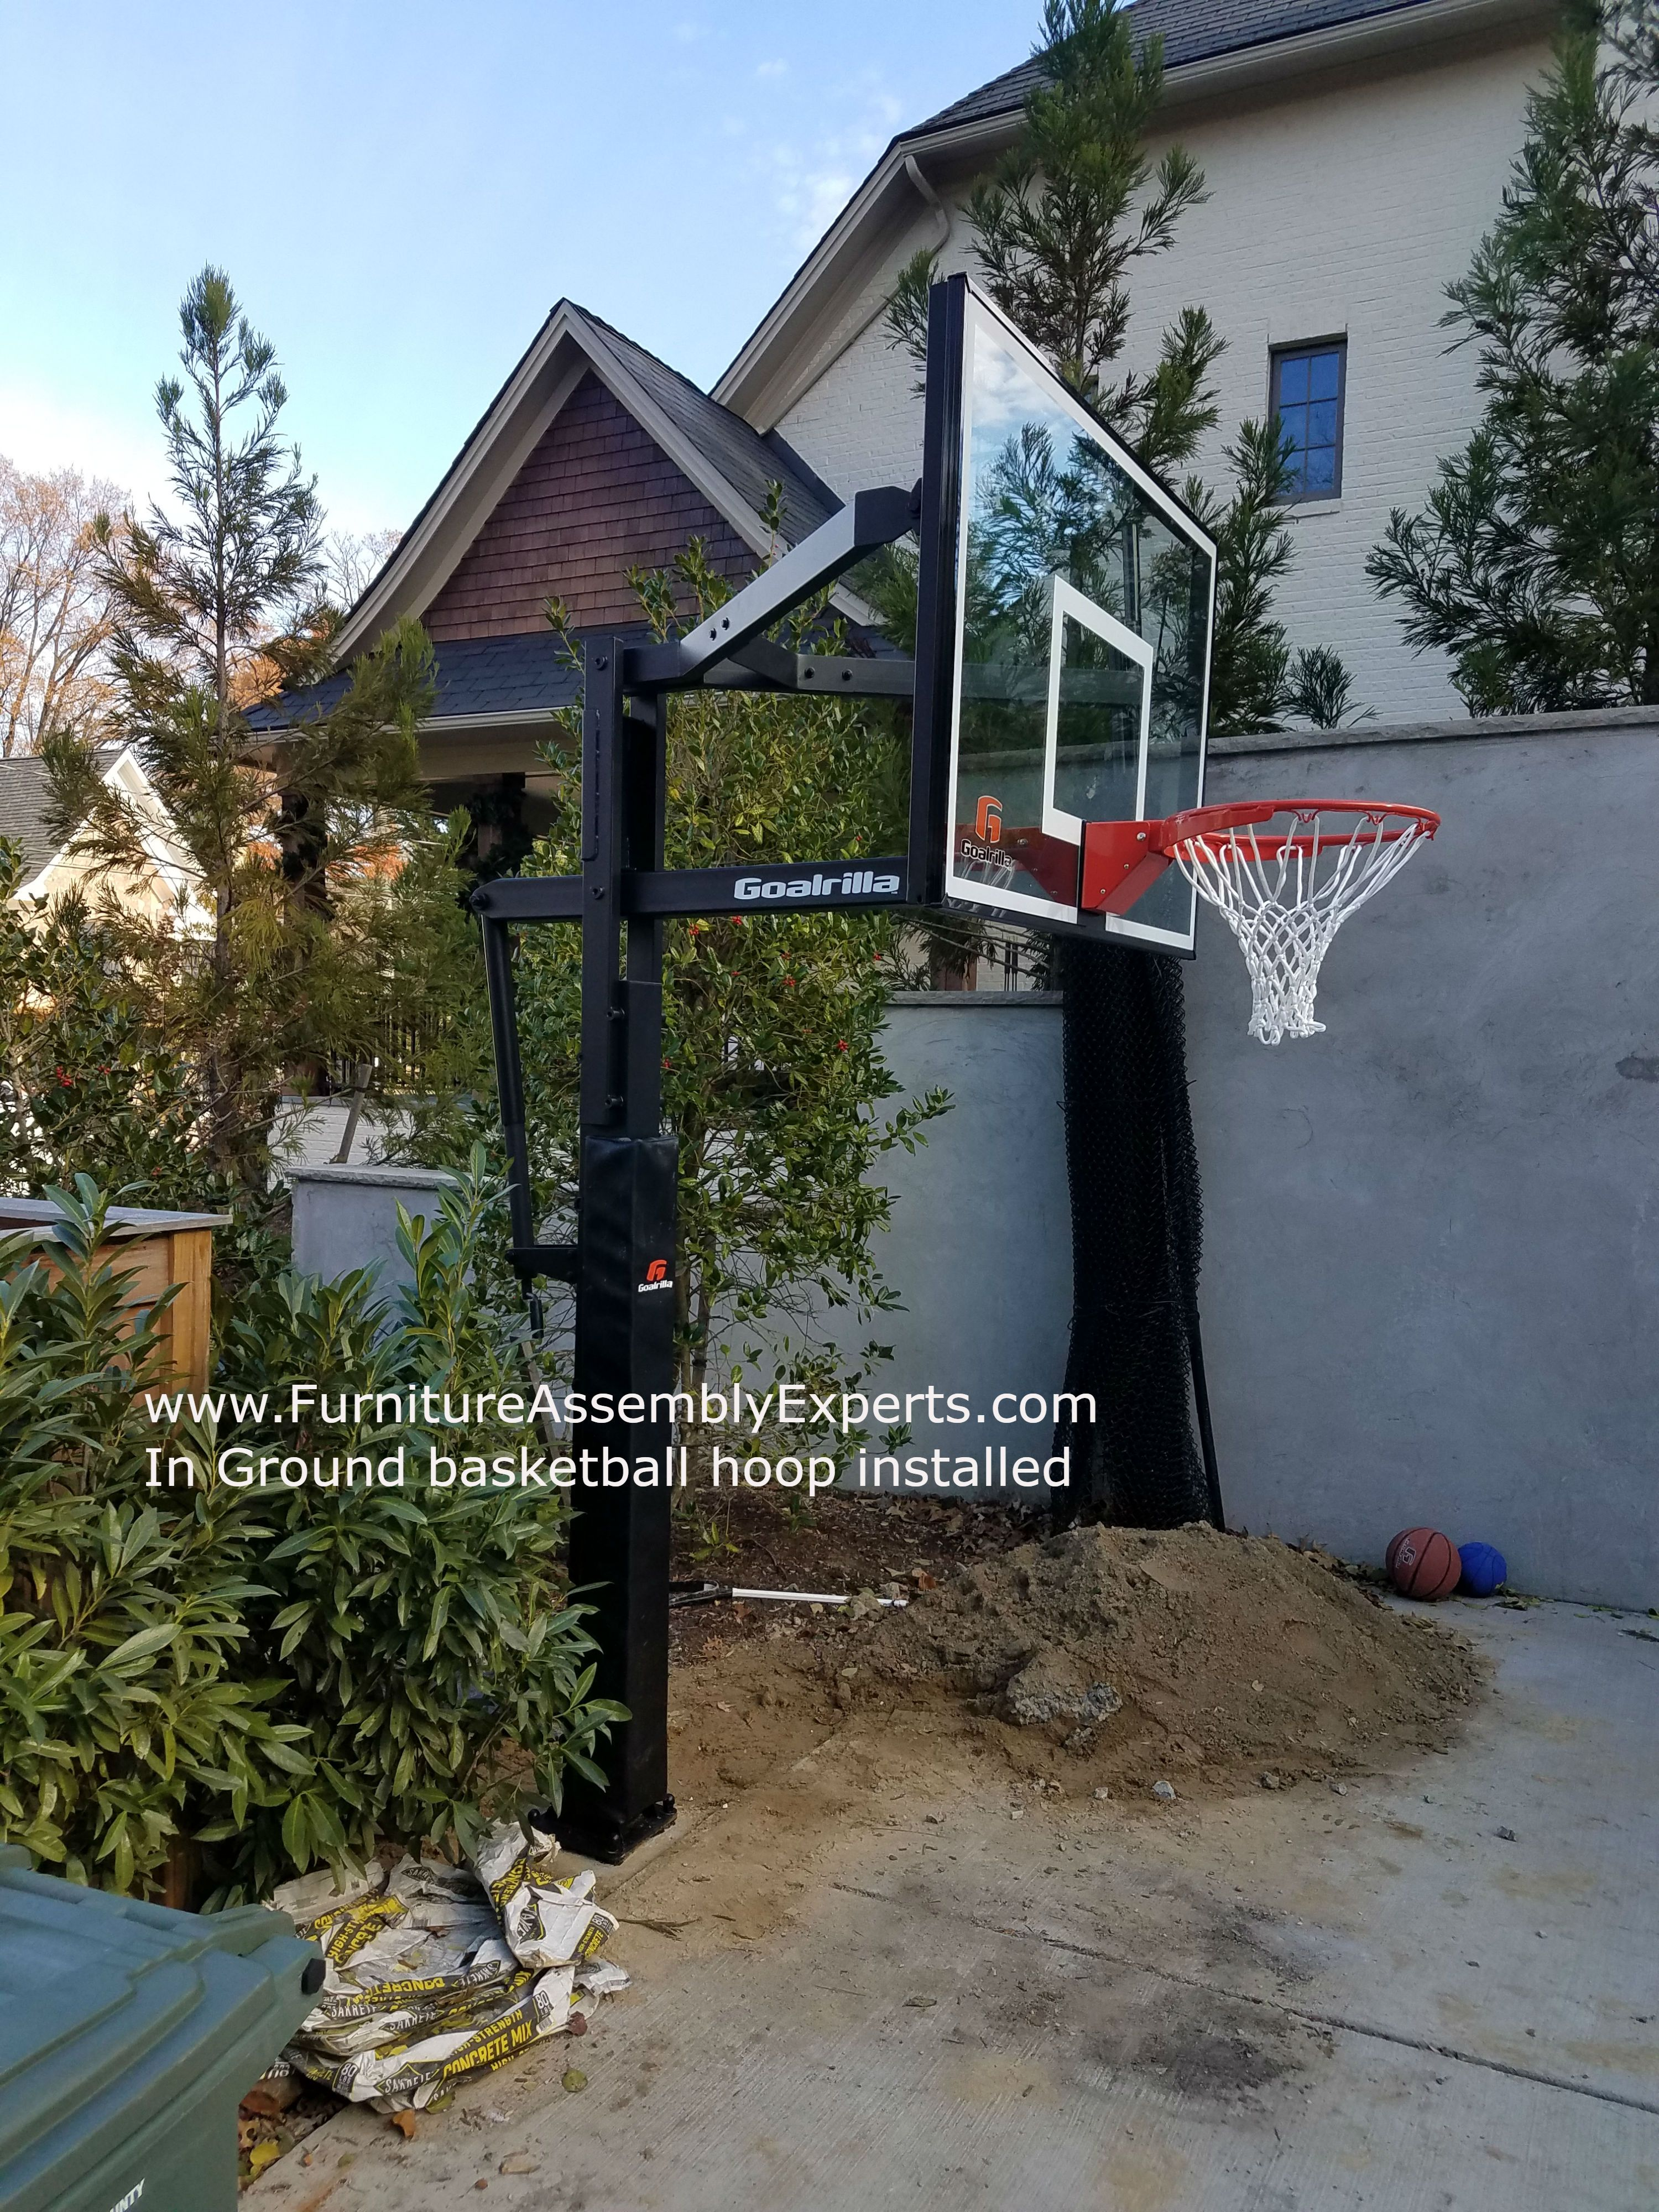 In Ground Portable Basketball Hoop Installation Completed In